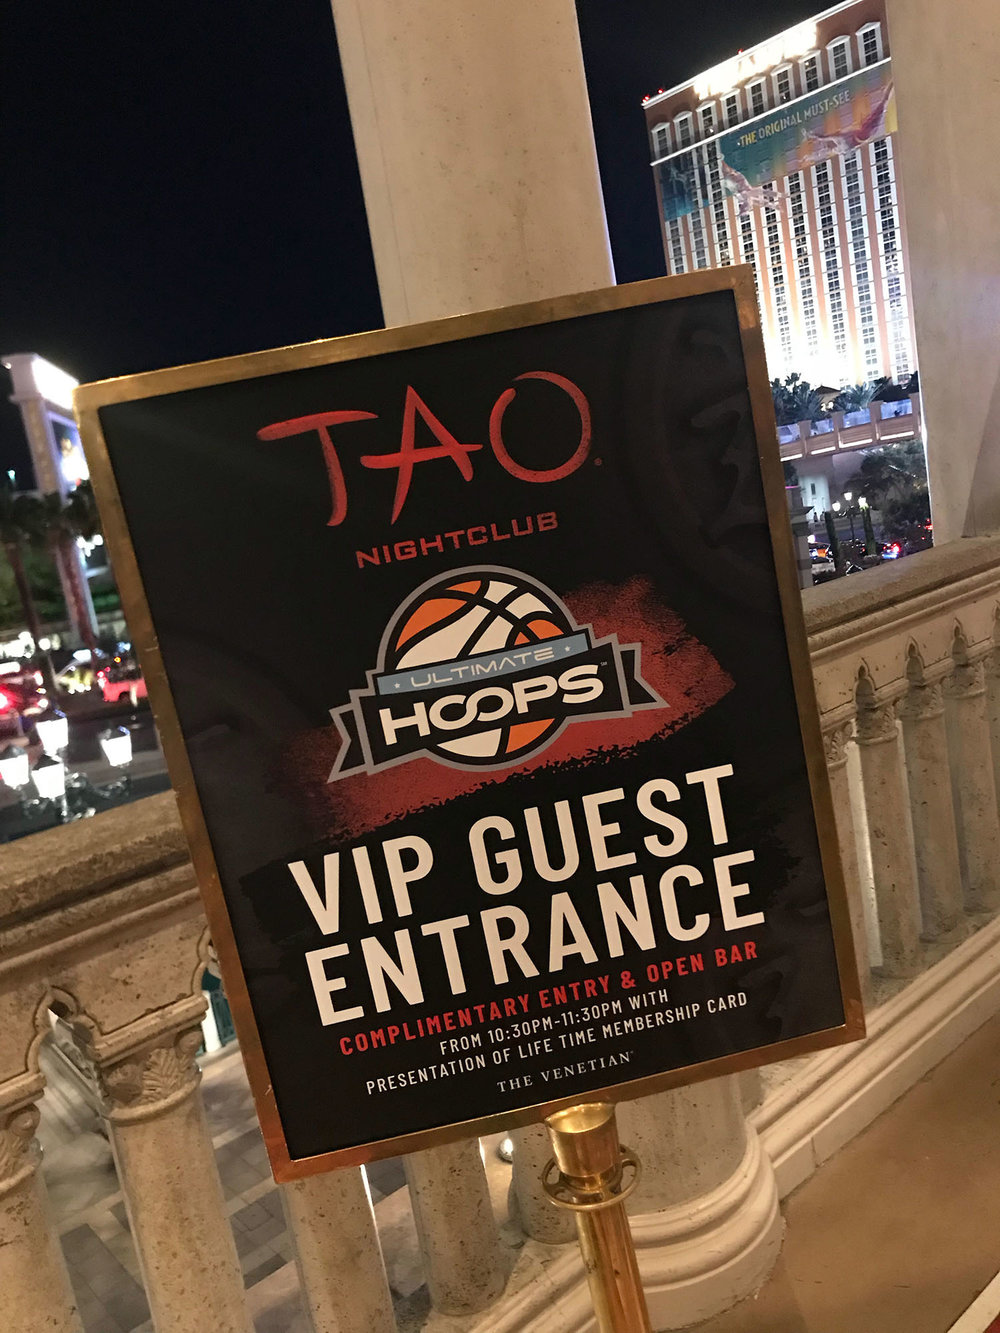 Tao hosted the 2018 National Tourney Saturday night after-party in 2018